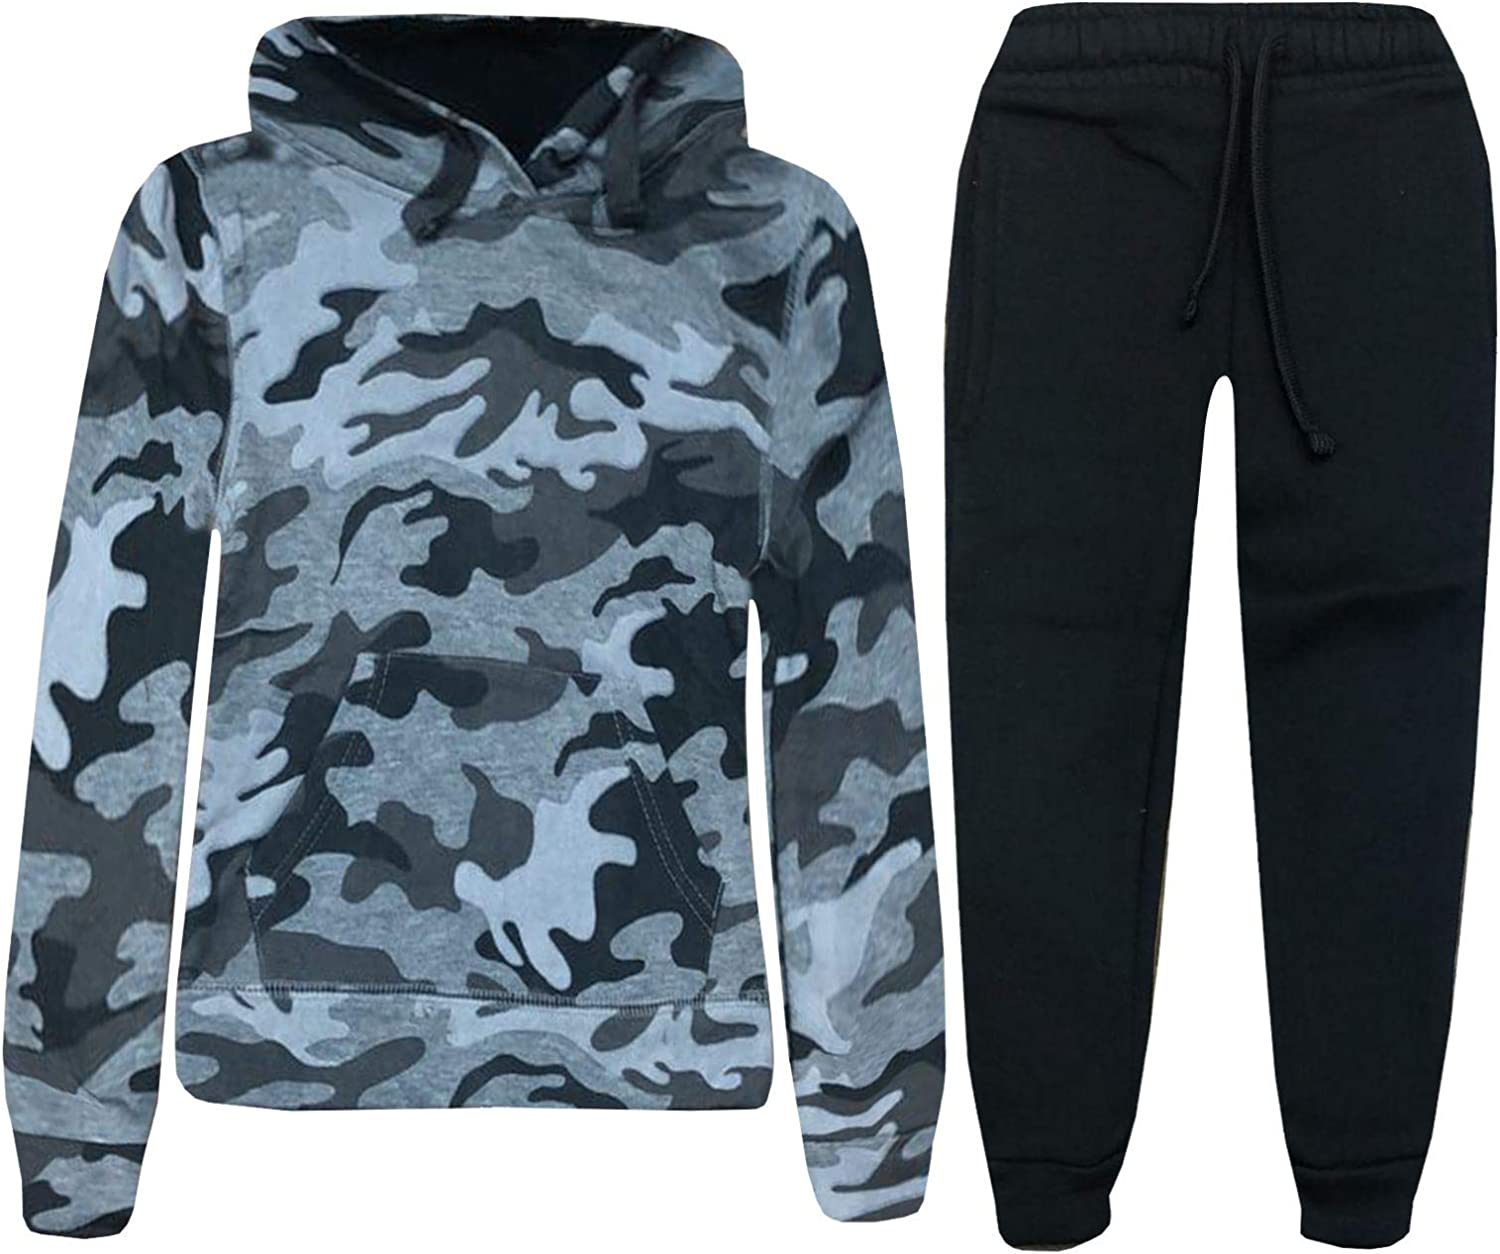 Whispering Jones London Boys Kids Camo Army Tracksuit Hooded Pullover Hoodie Bottom Jog Suit Joggers 0-15